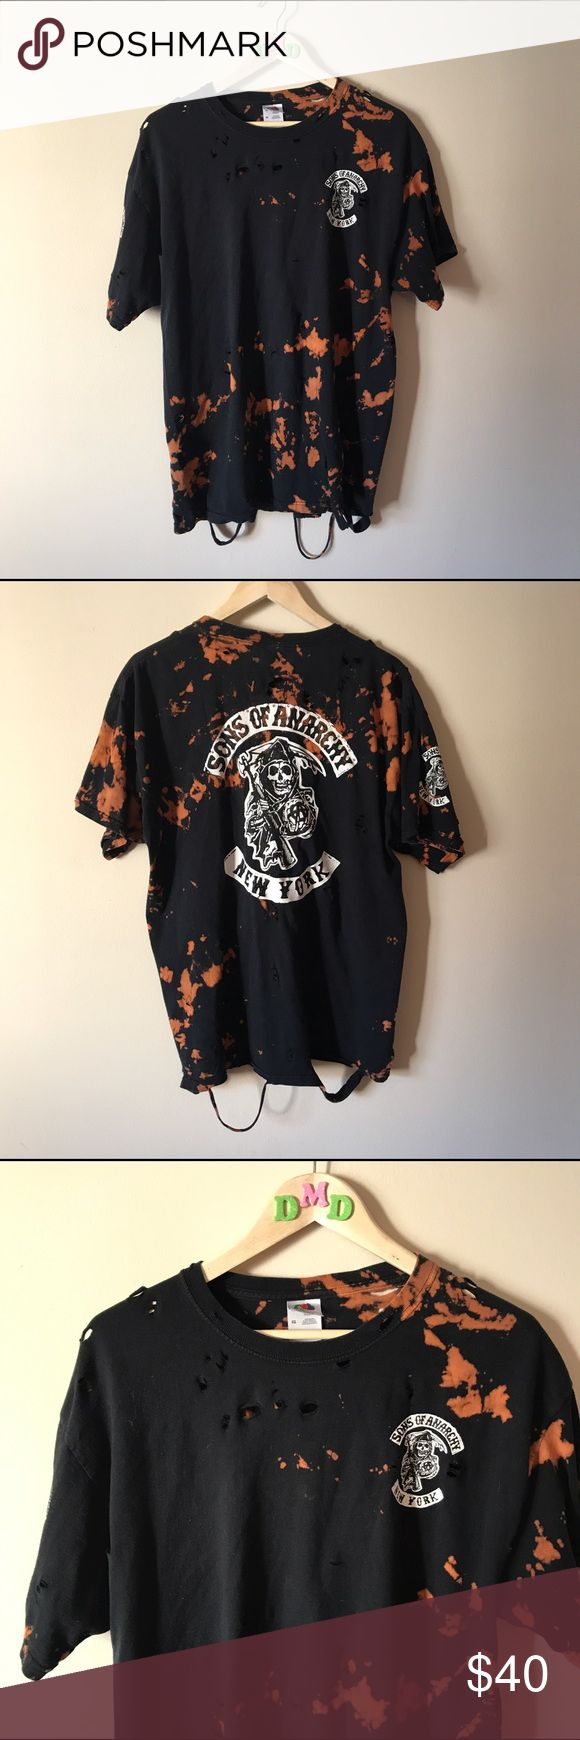 ✂️ CUSTOM • Distressed bleached SOA t-shirt Completely custom SONS OF ANARCHY tshirt. is distressed, bleached, worn out, ripped up, back graphic does have rhinestones for a little bling effect (hard to tell in pictures, subtle!) shirt is made of a softer https://www.fanprint.com/stores/fight-club?ref=5750